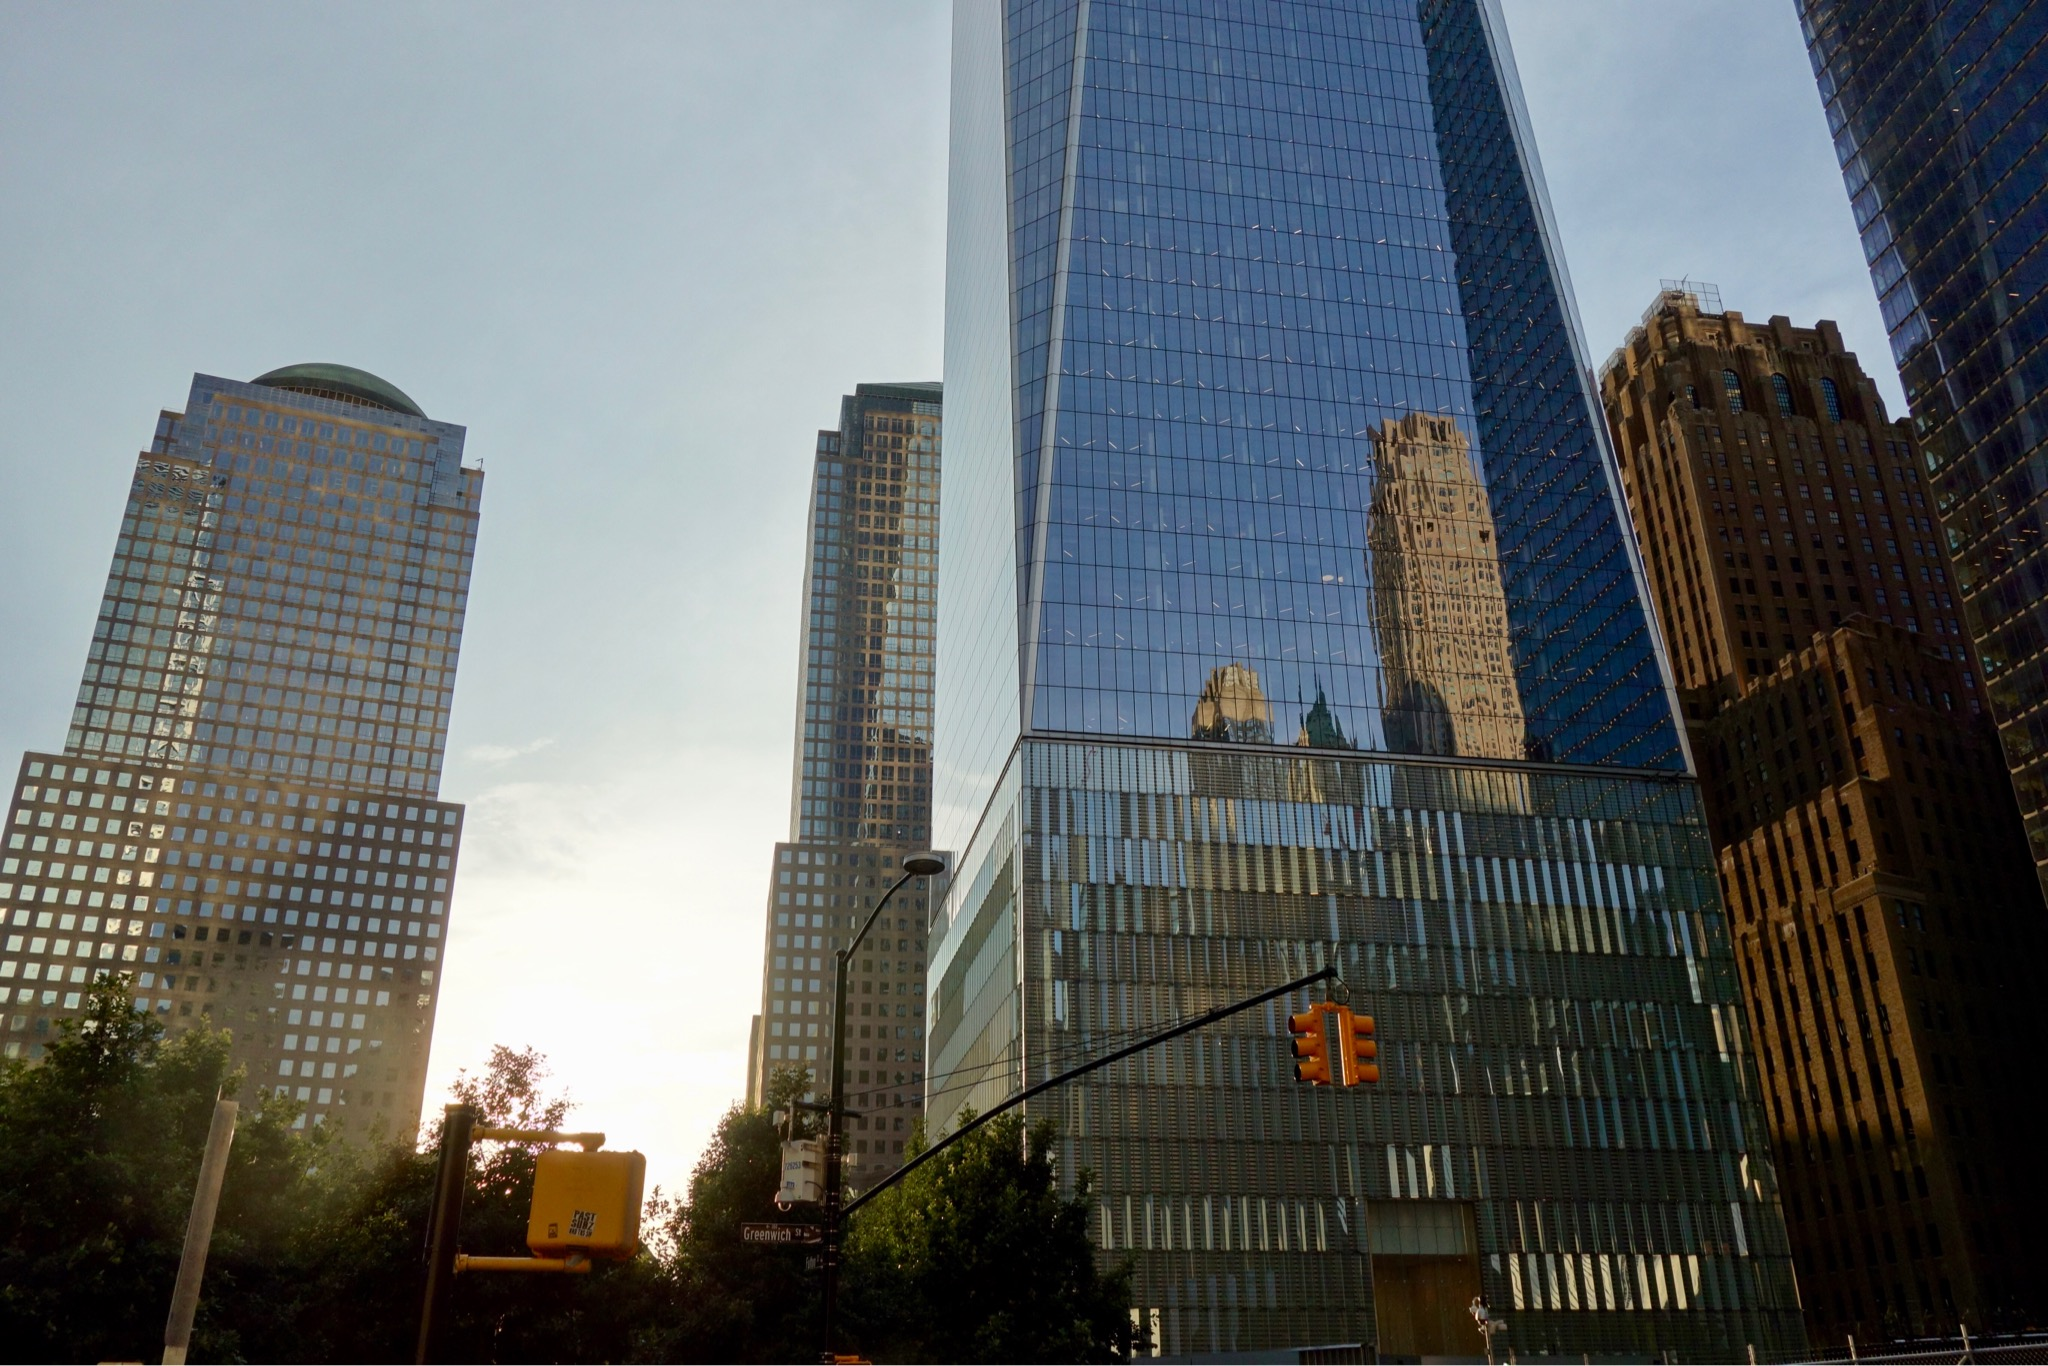 Reflection of buildings in the new Peace tower at World Trade Centre site, New York City